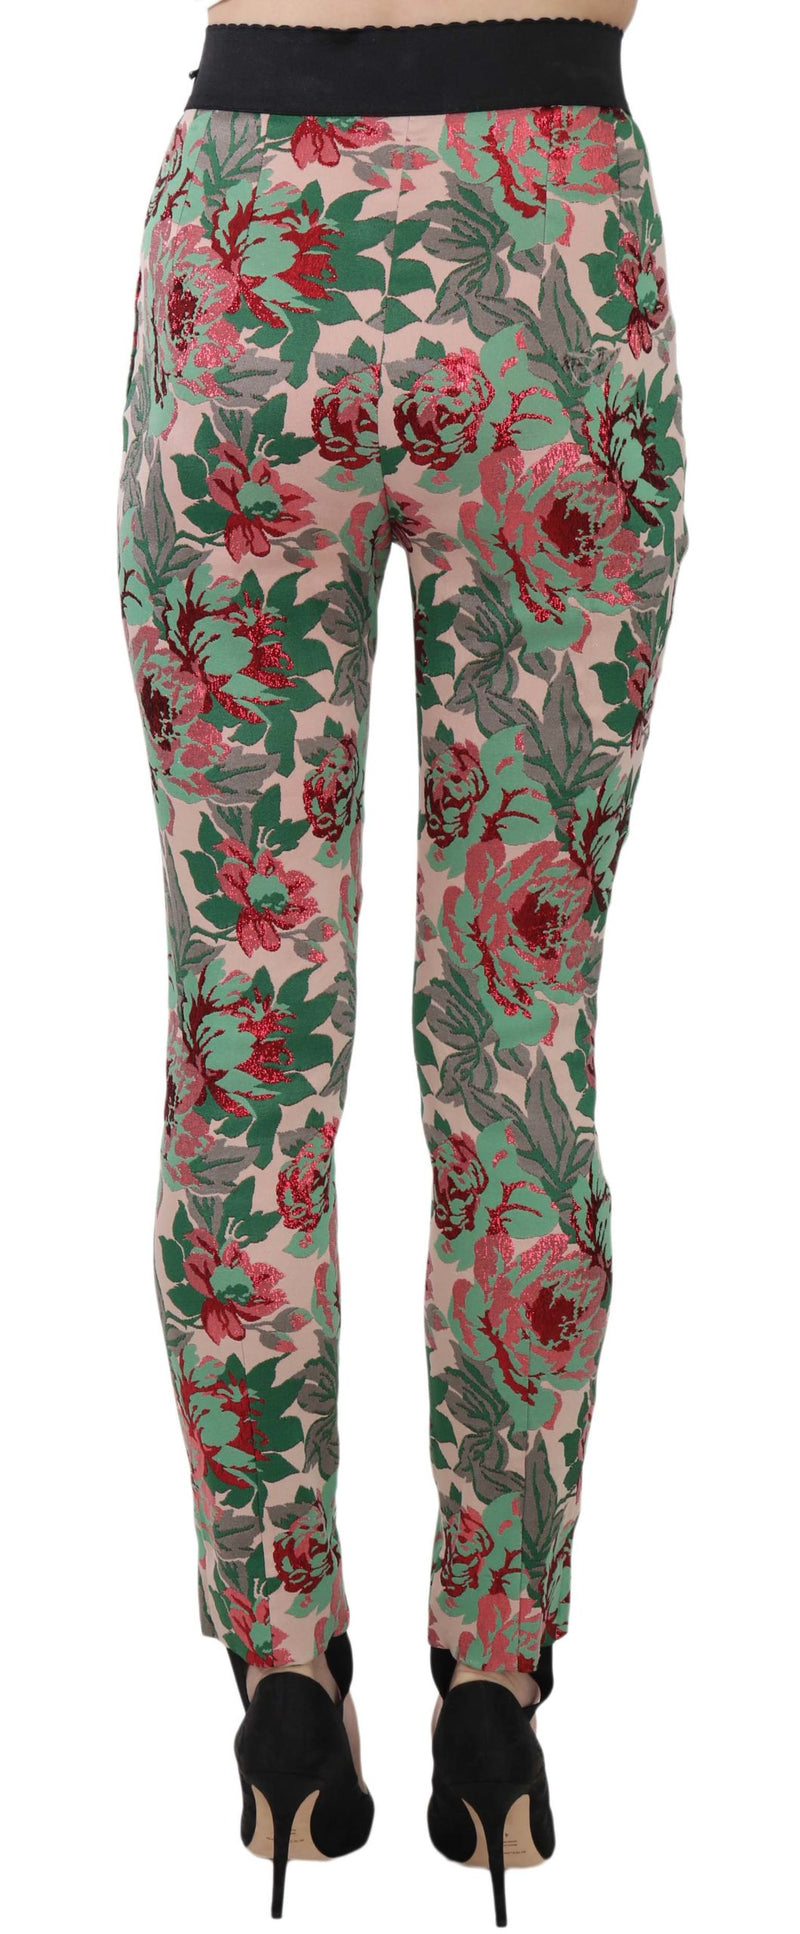 Stirrup Jacquard Floral Stretch Trousers Pants